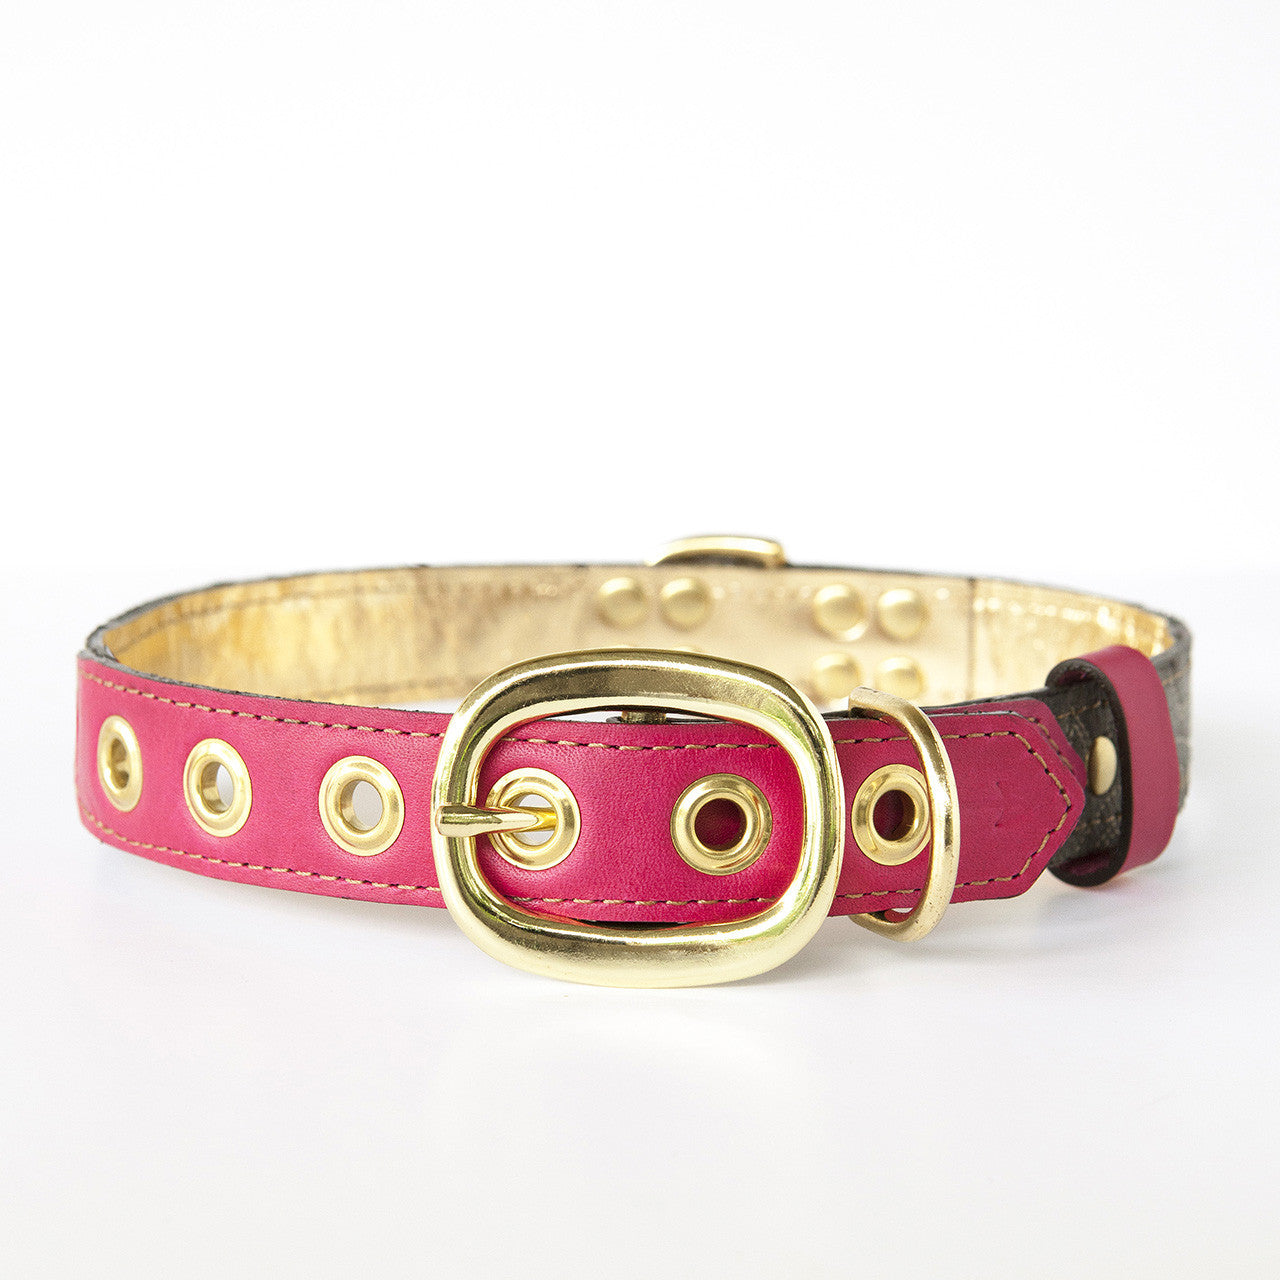 Hot Pink Dog Collar with Distressed Gray Leather + White Stitching (back view)